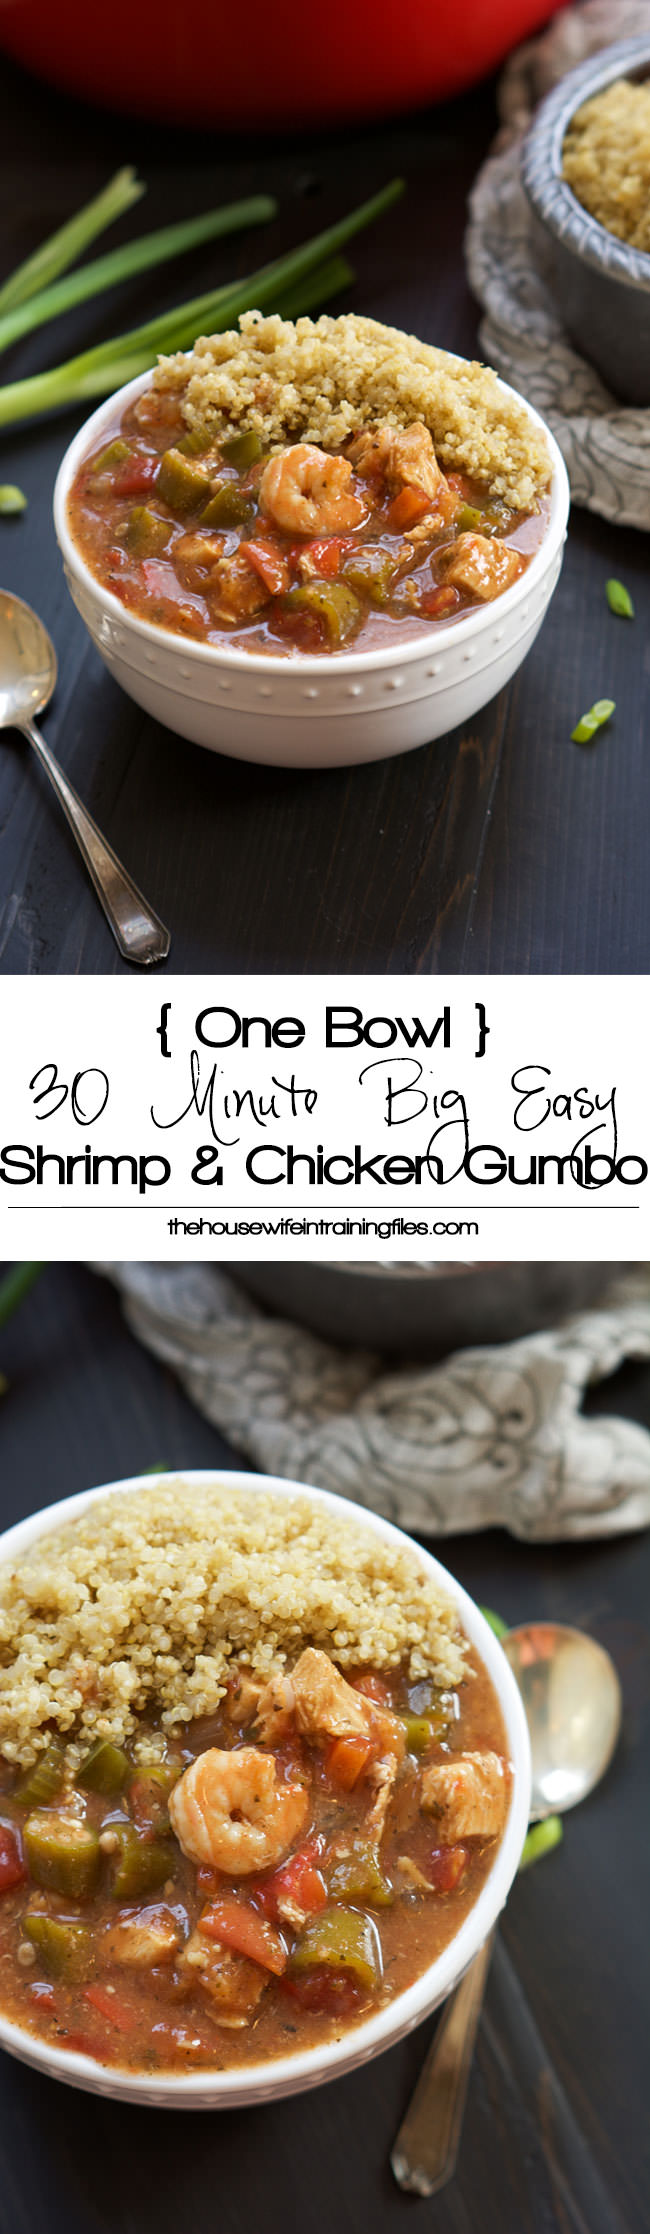 With only one pot, this spicy and healthy Spice and Chicken Gumbo has a velvety sauce, served over quinoa and is ready in only 30 minutes! #healthy #gumbo #madrigras #glutenfree